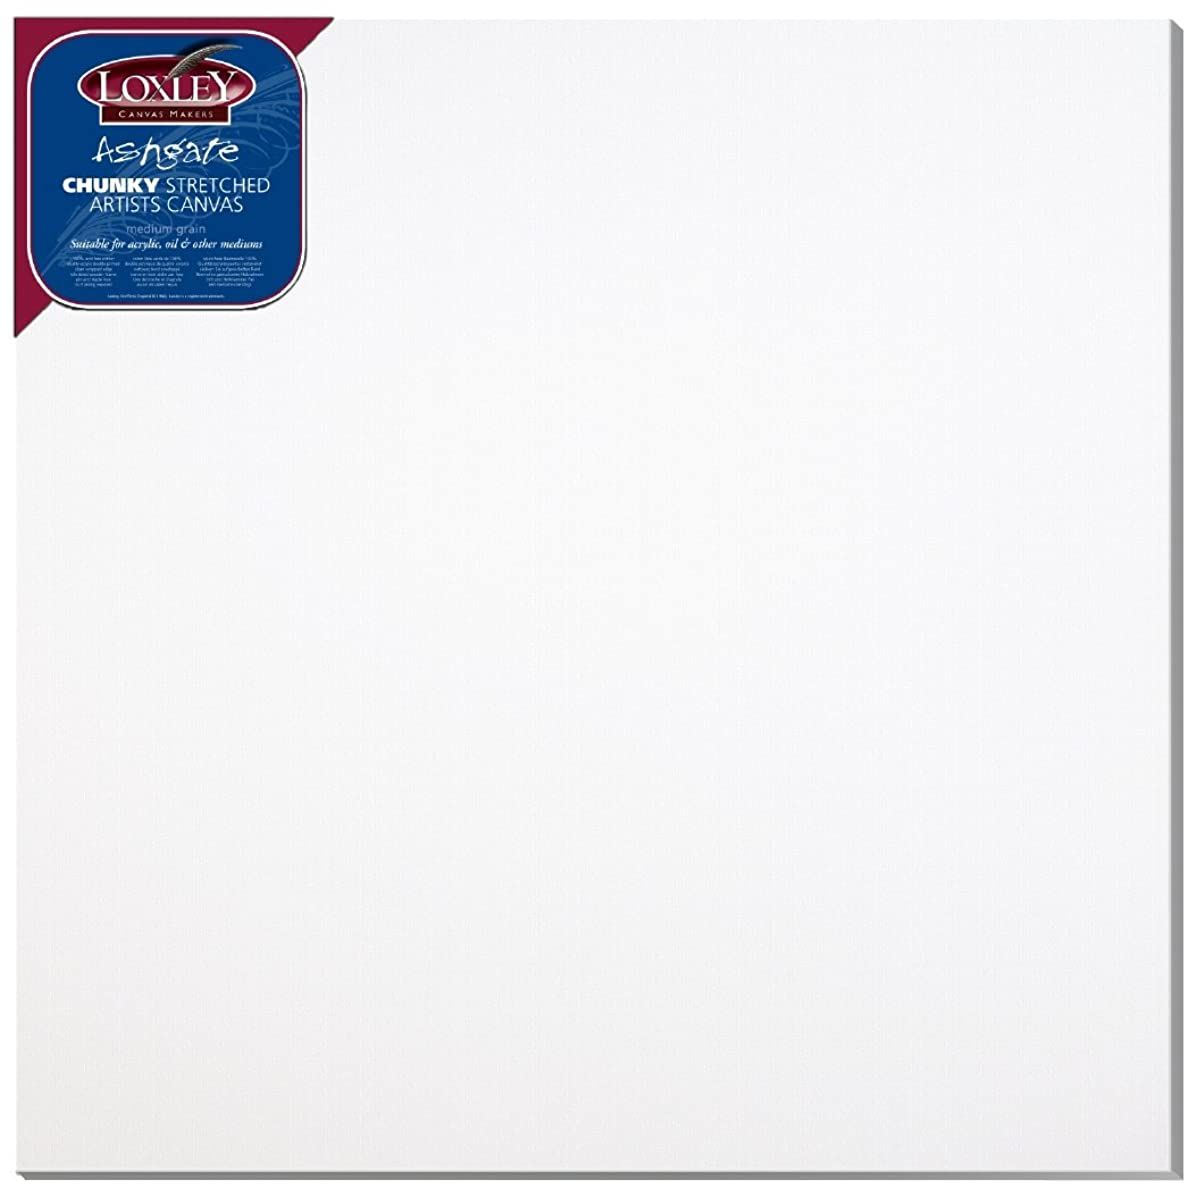 Loxley 40 x 40-inch Deep 36 mm Edge Ashgate Chunky Stretched Artists Canvas, White by Loxley